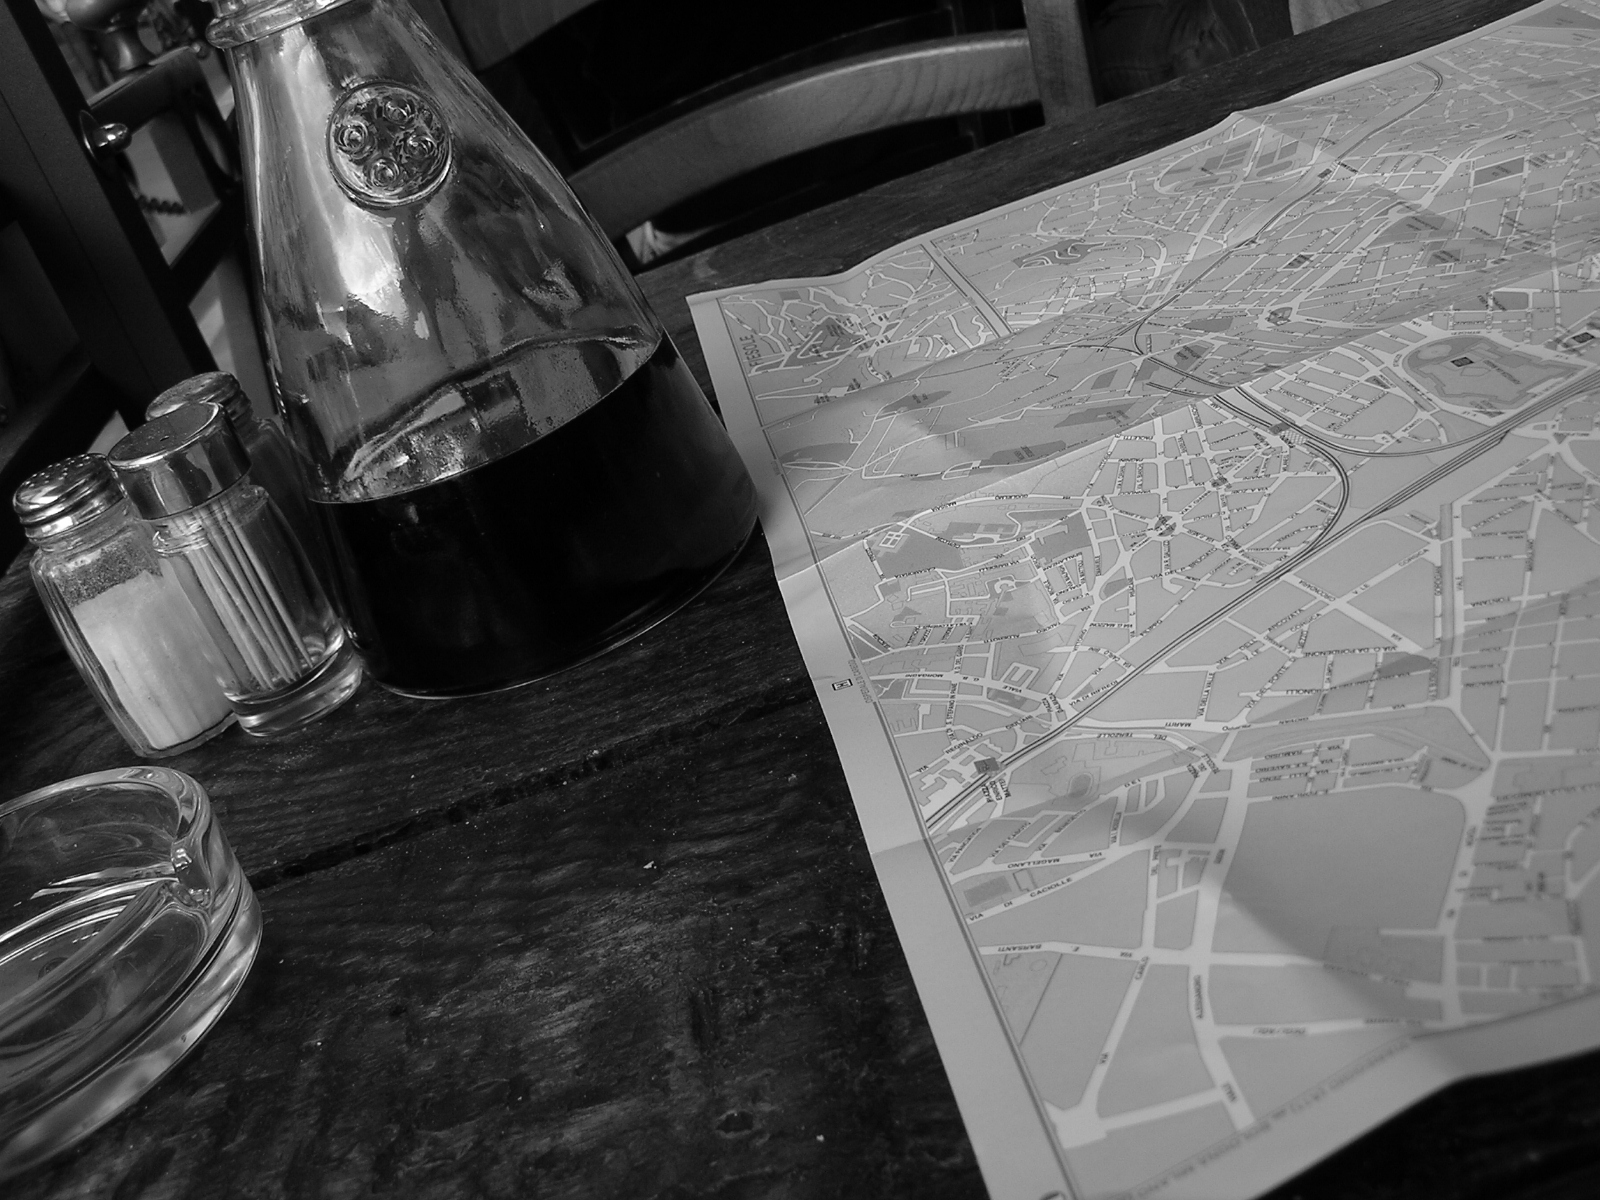 Map and carafe of wine